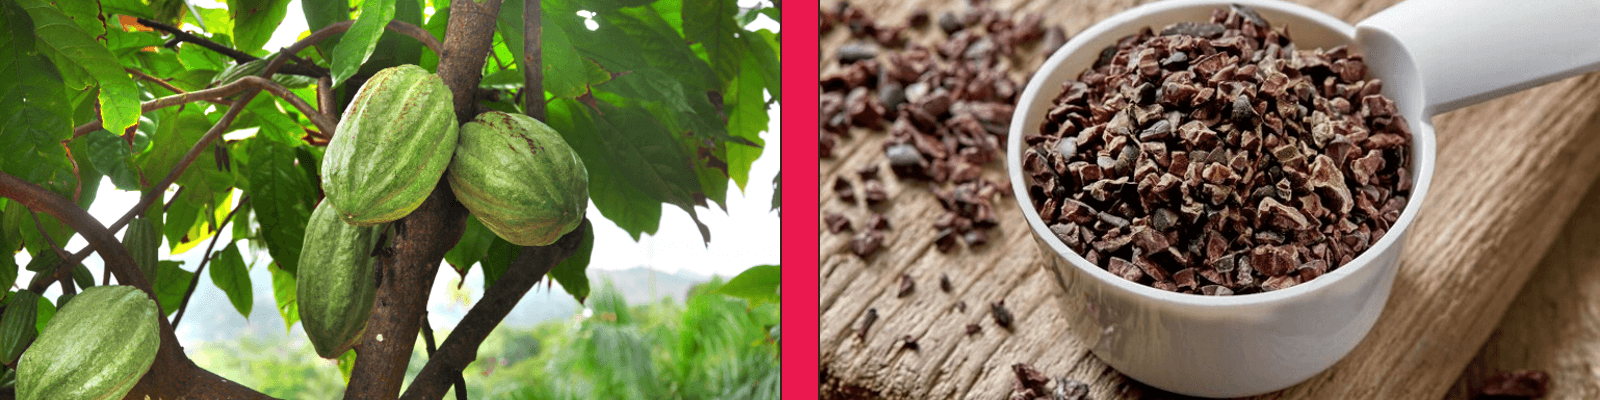 benefits of cacao powder and cocoa nibs